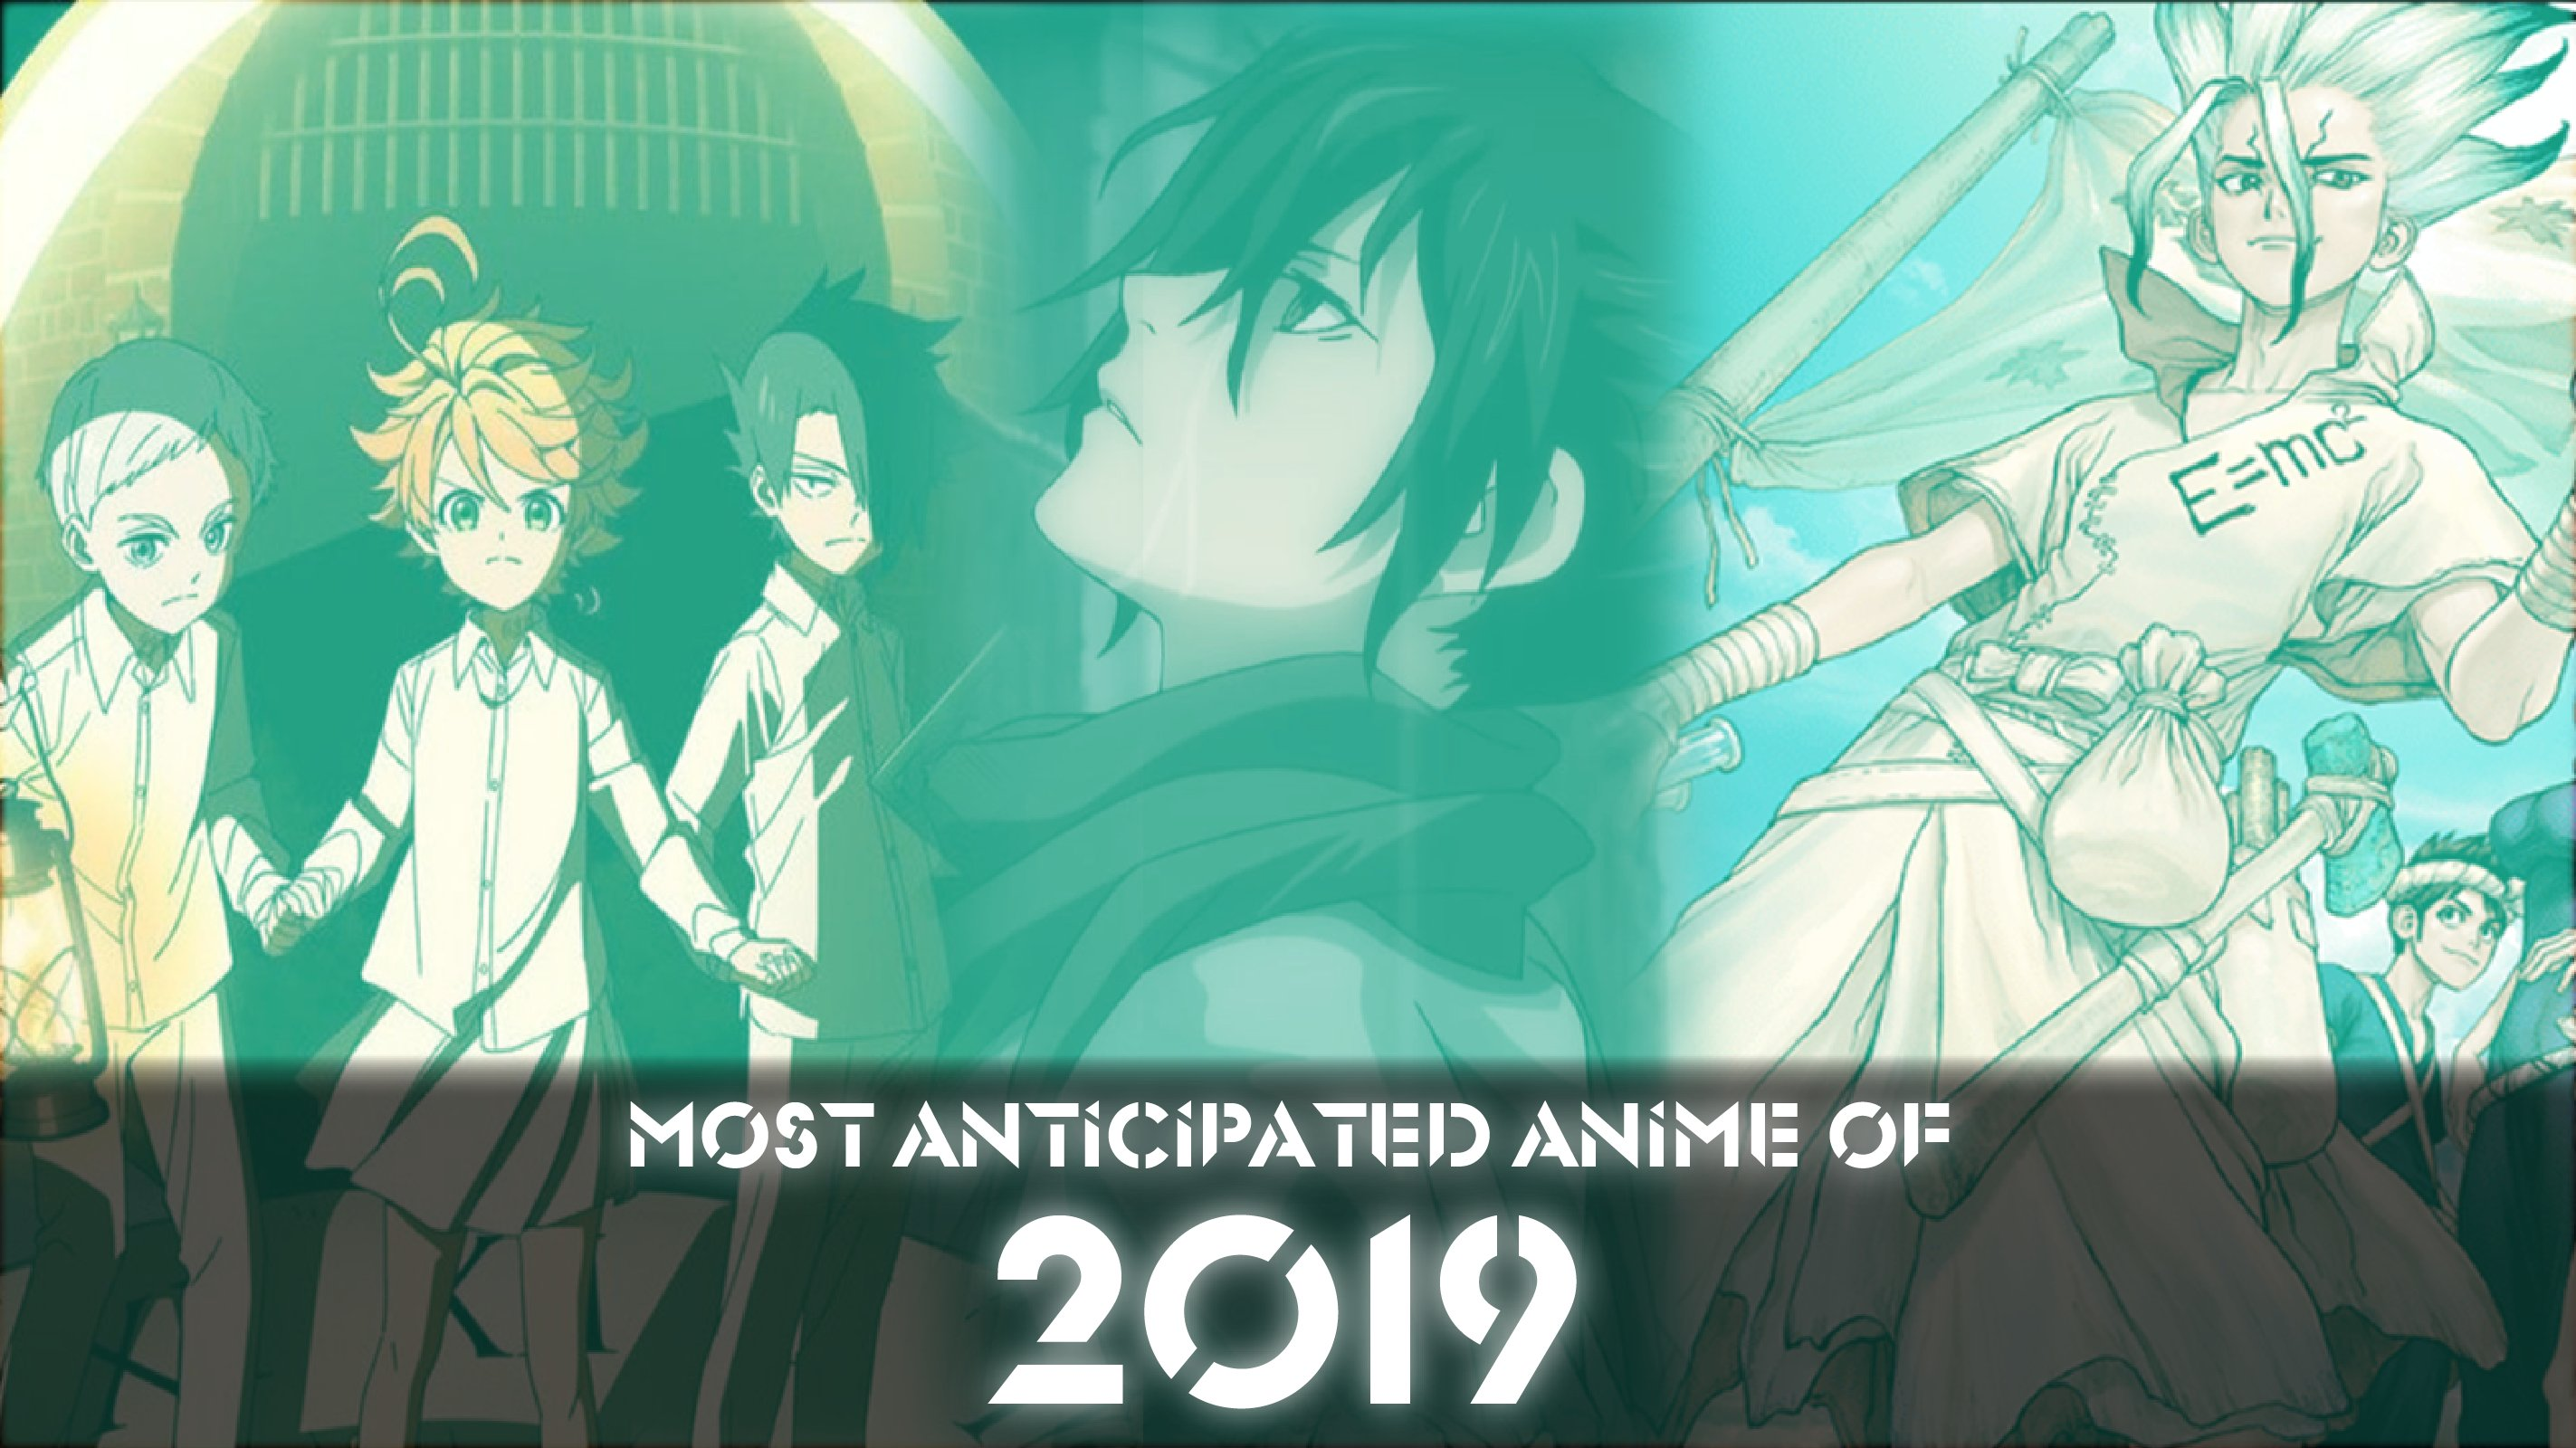 Most Anticipated Anime of 2019